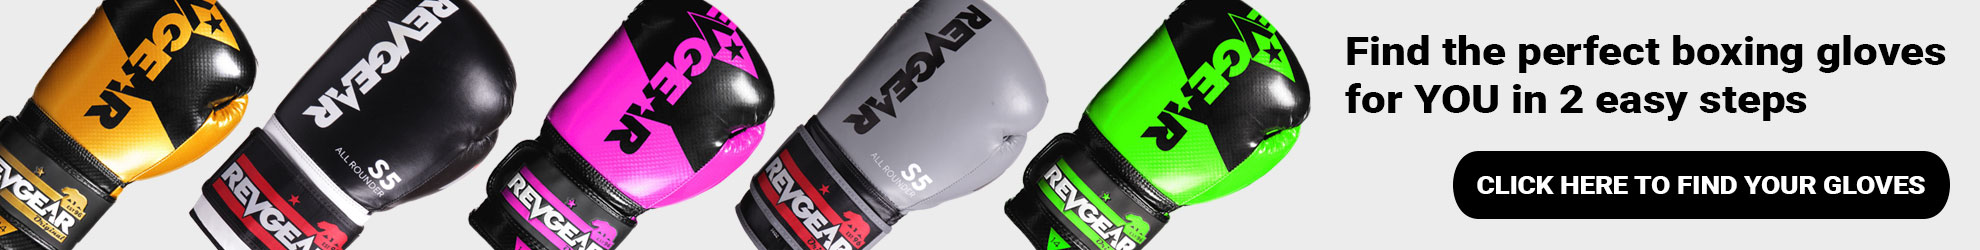 Revgear Boxing Gloves Buyers Guide